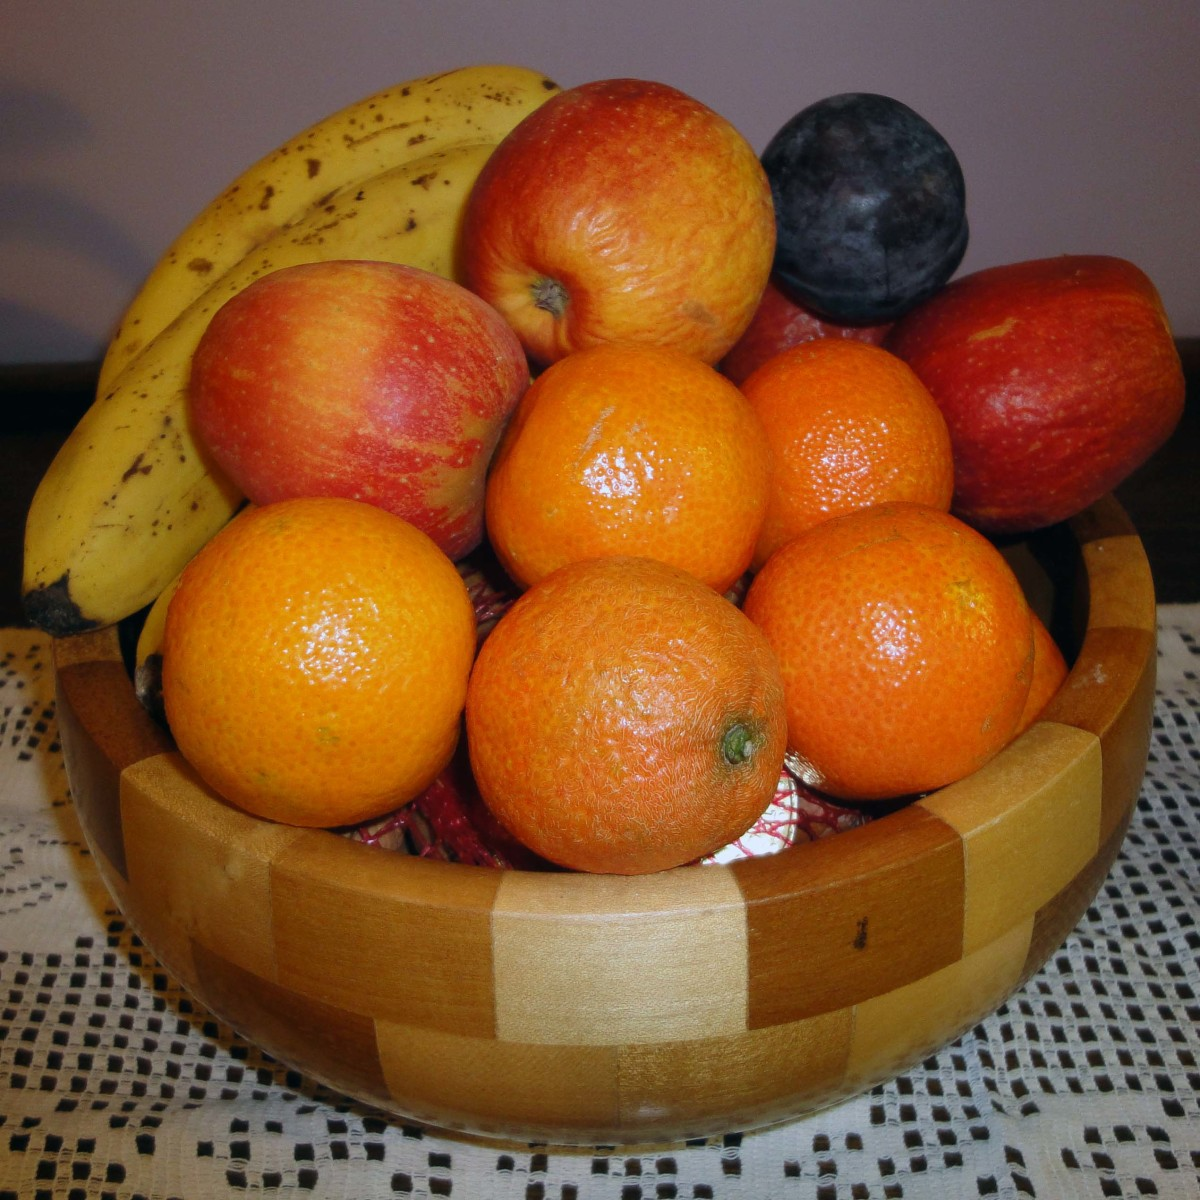 Chequered light and dark solid wood with banana, oranges, apples and plums